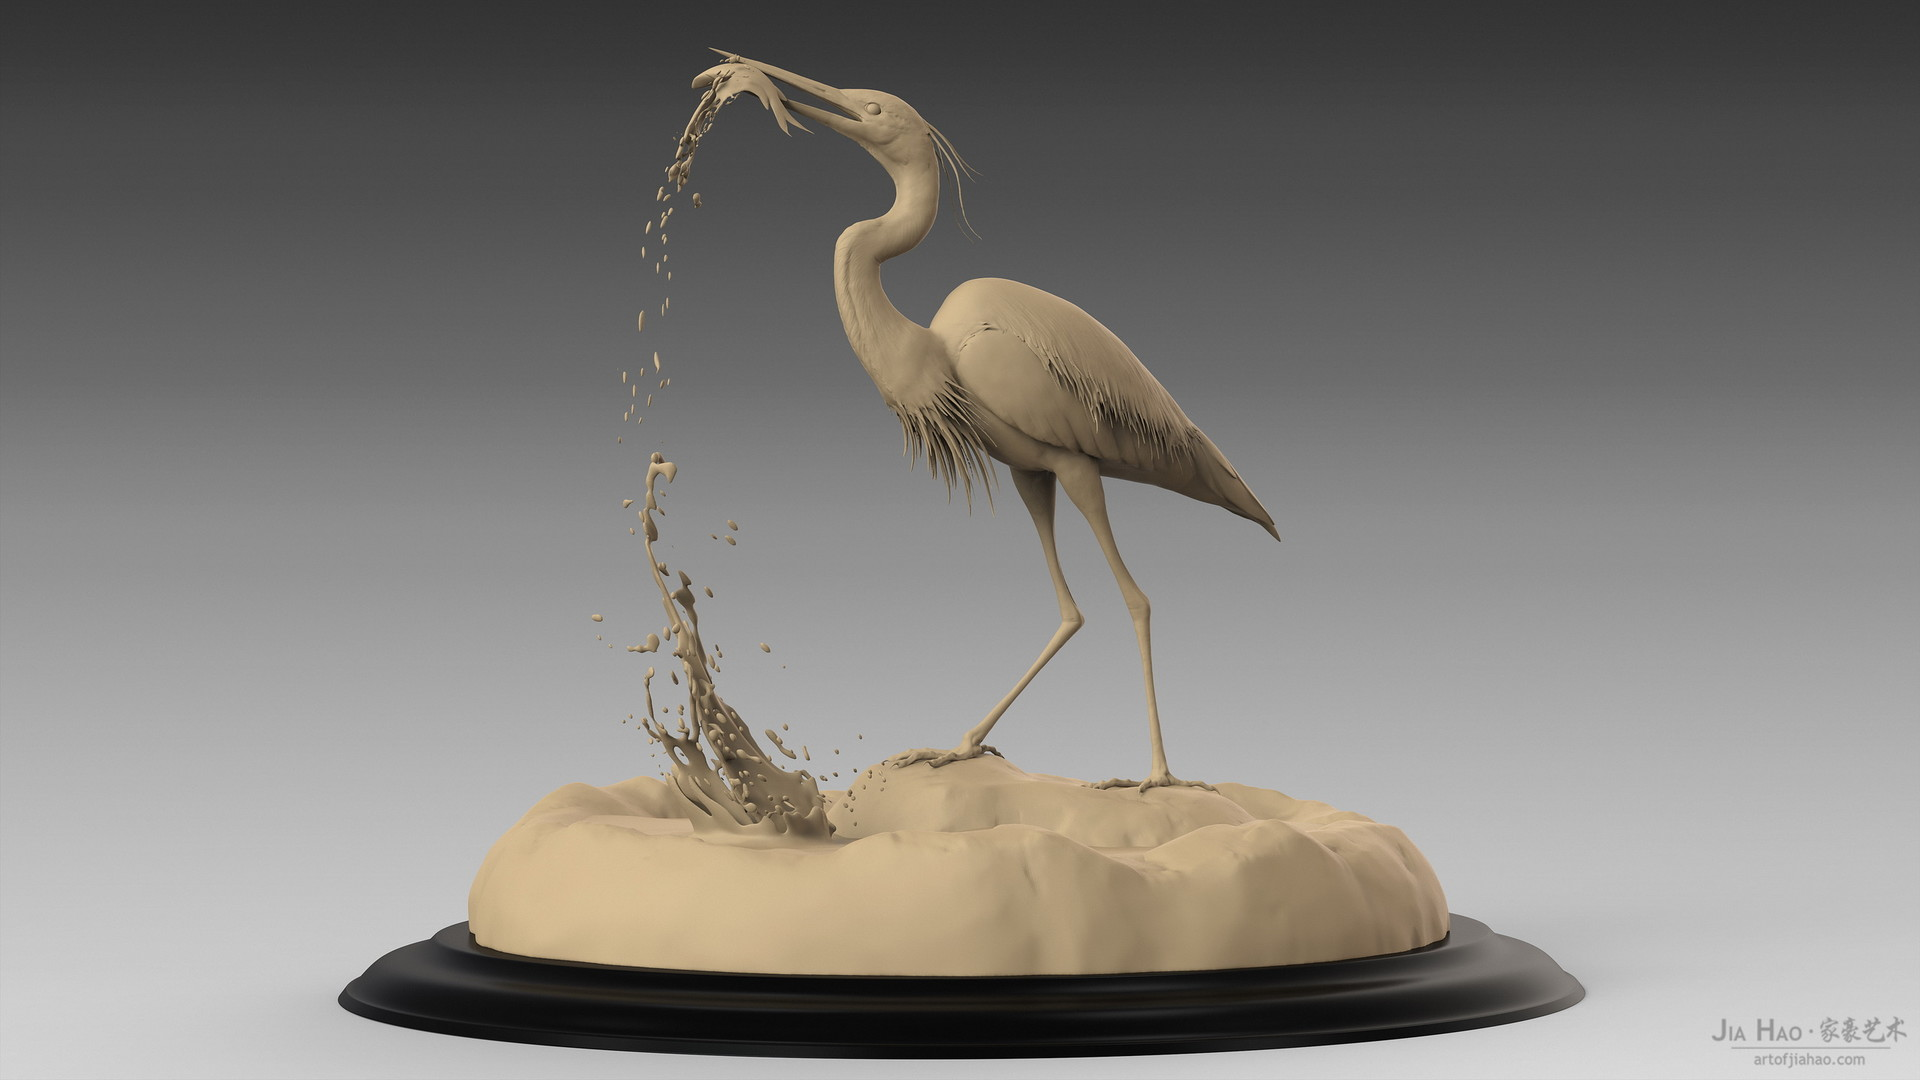 Jia hao blueheron digitalsculpturea 01